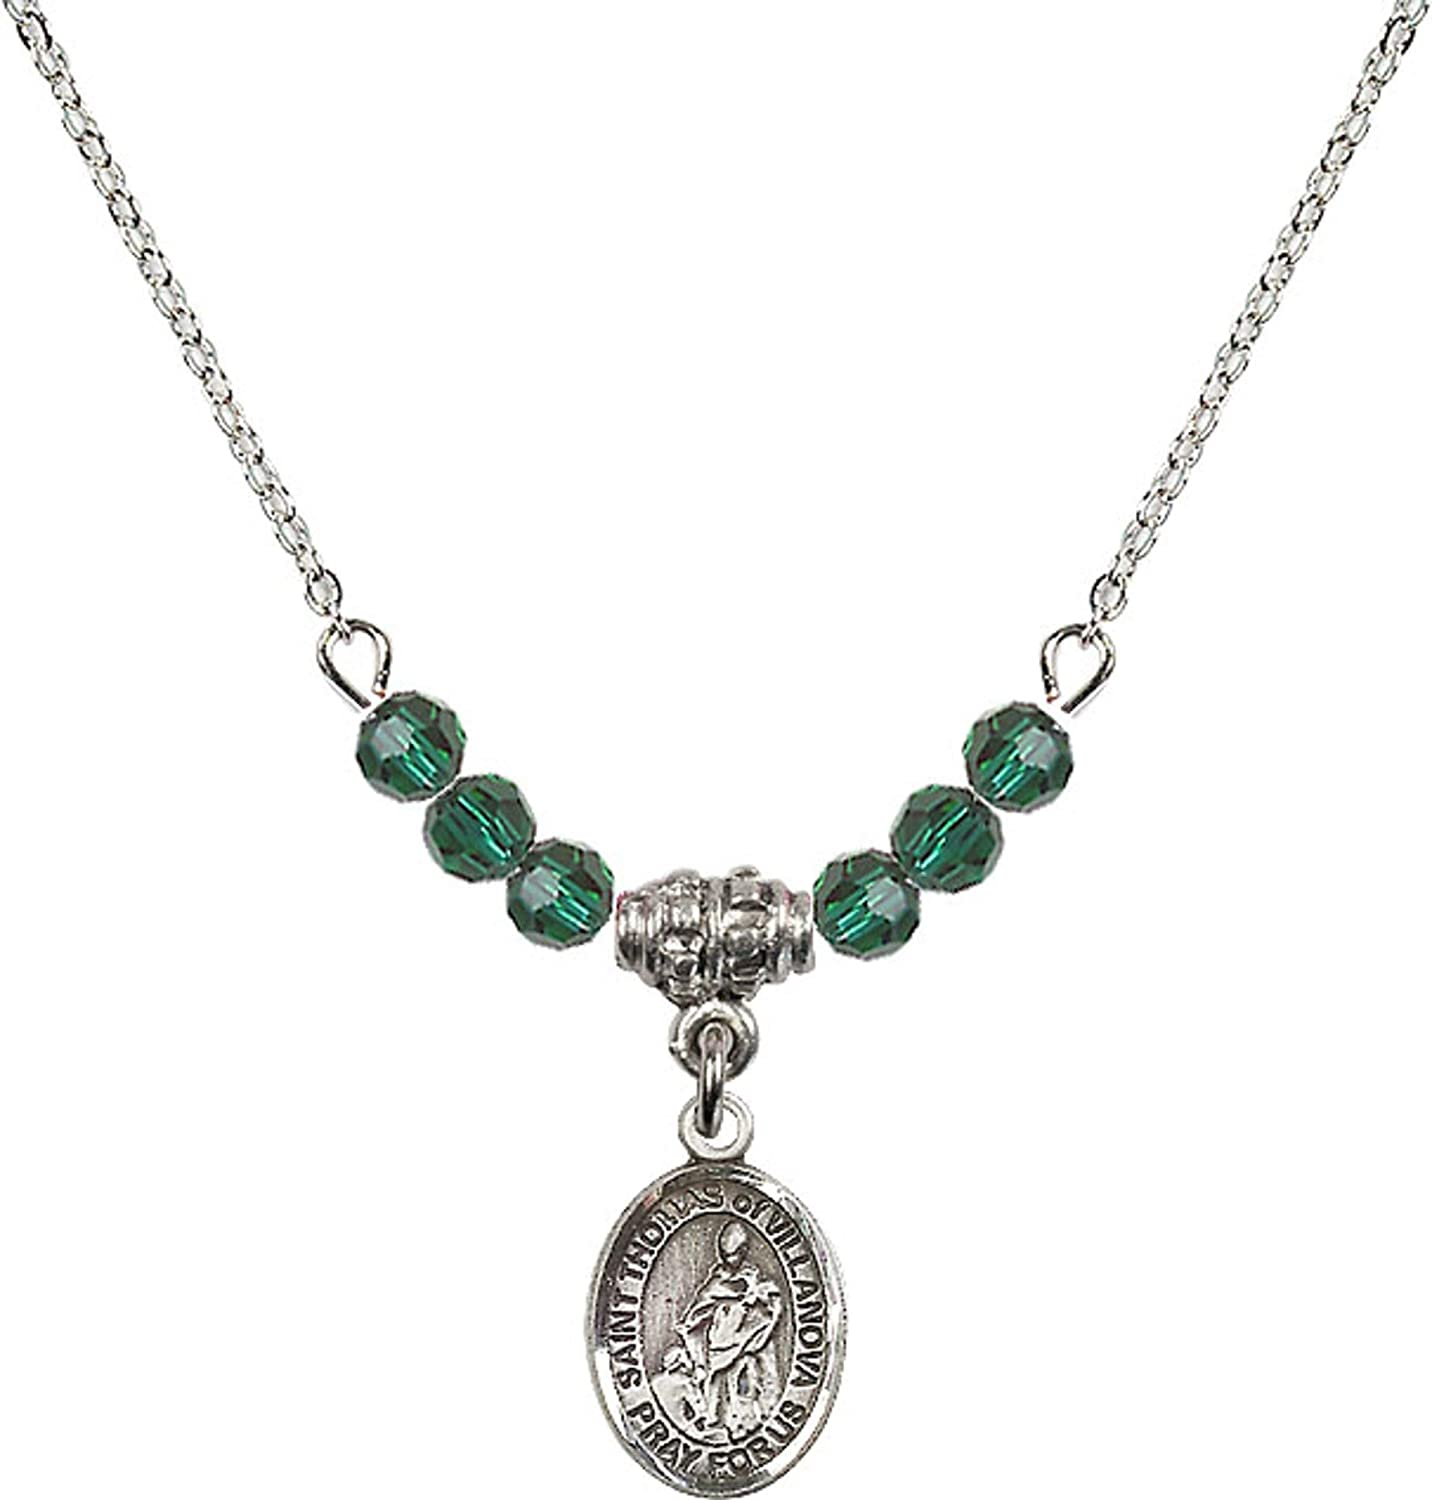 Bonyak Jewelry 18 Inch Rhodium Plated Necklace w// 4mm Green May Birth Month Stone Beads and Saint Thomas of Villanova Charm